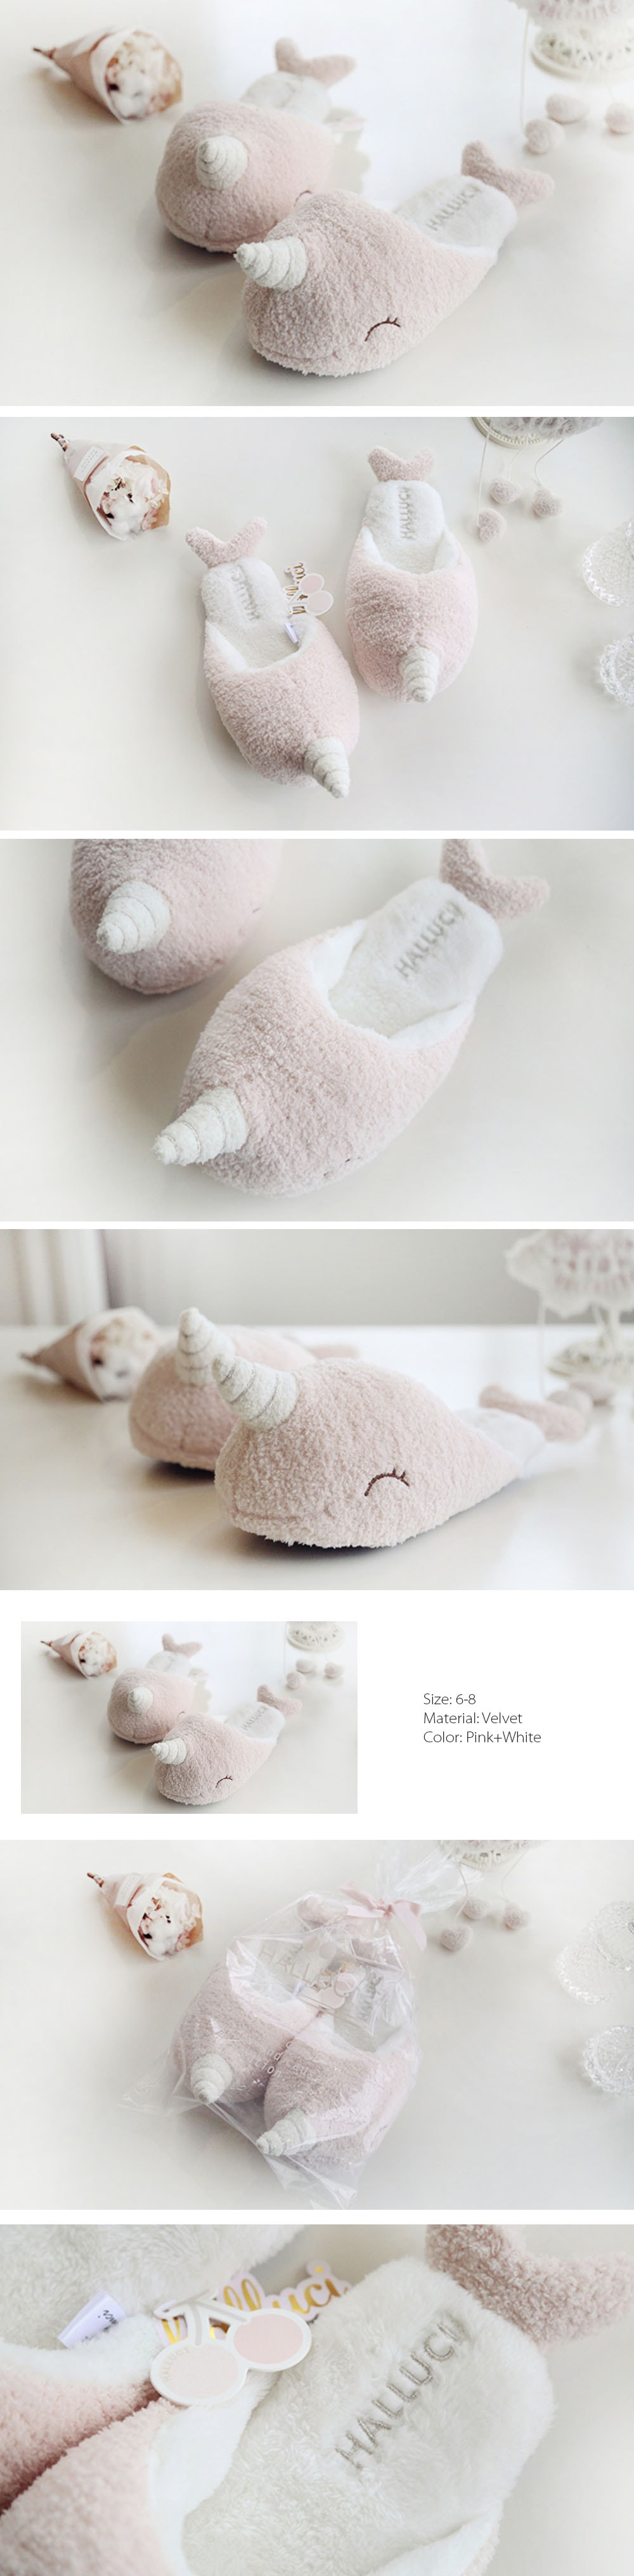 Unicorn Slippers For Unicorn Lovers